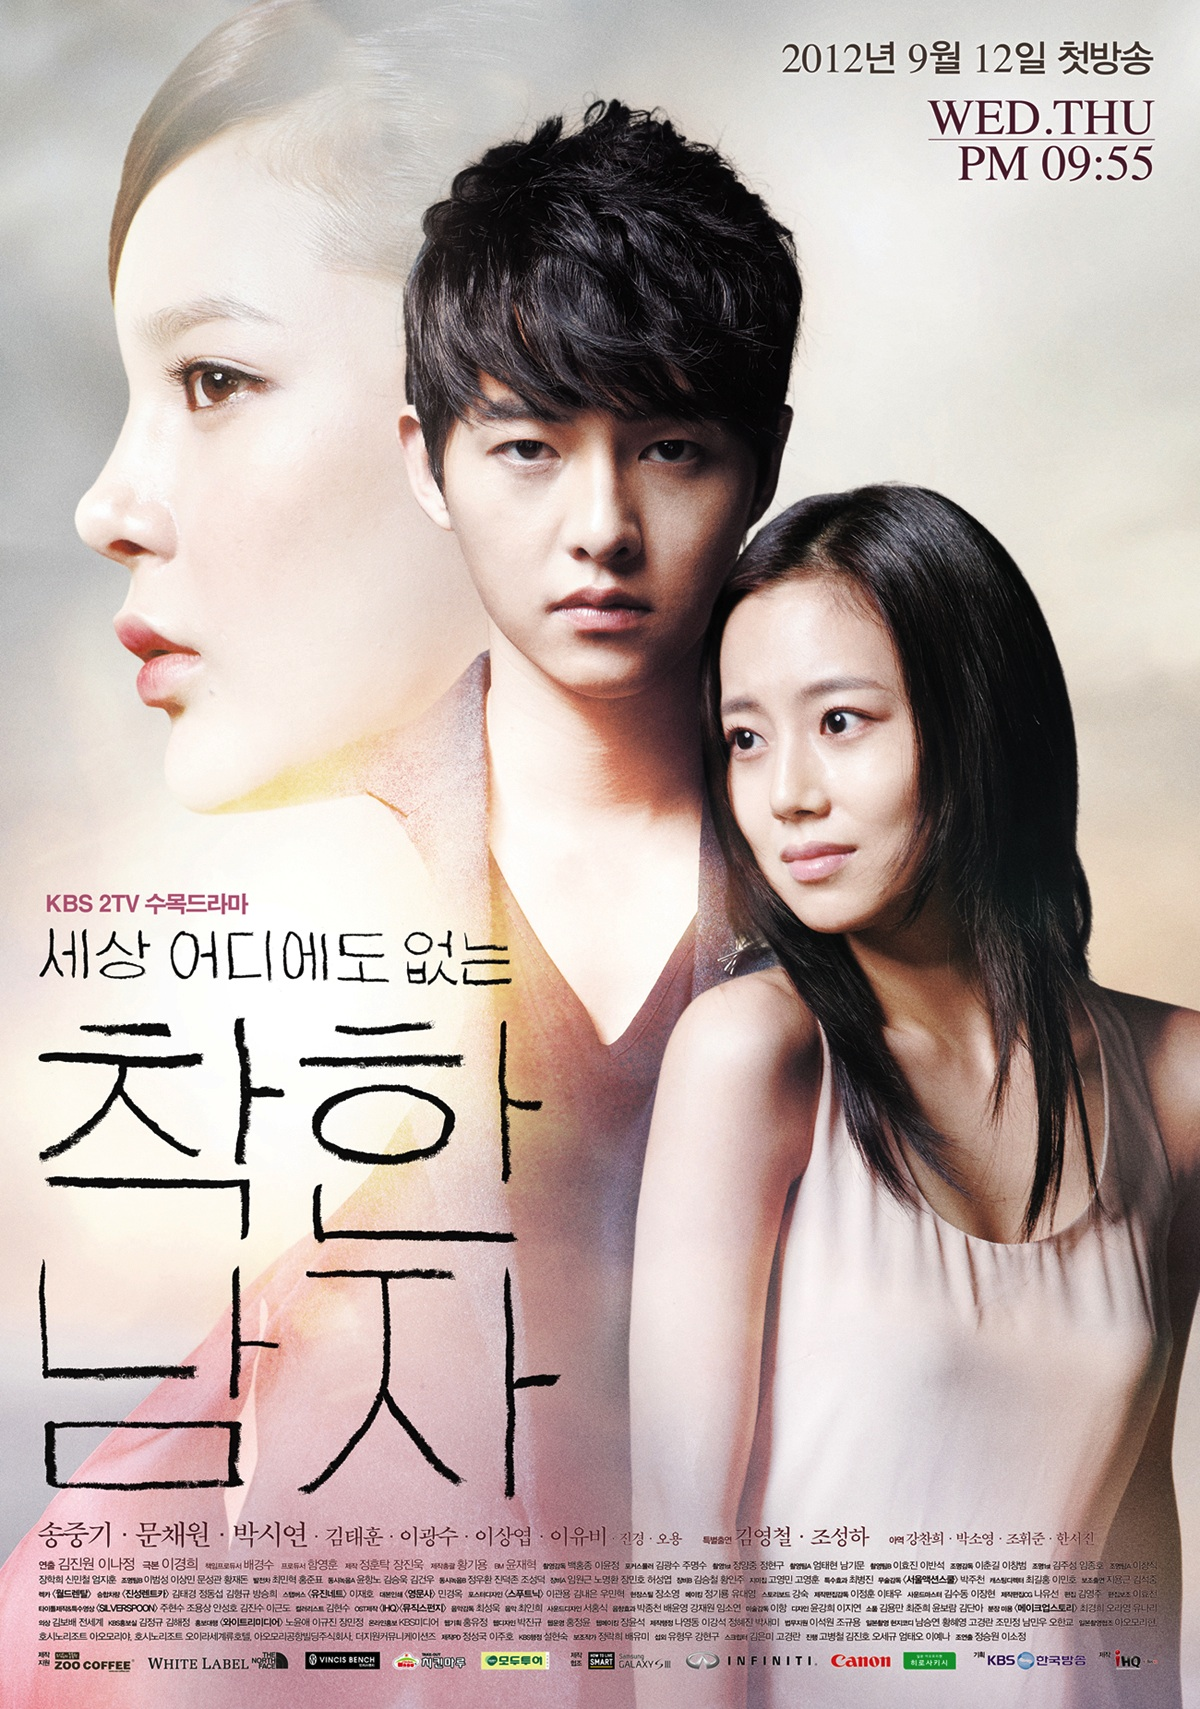 Kang Ma-Ru is a promising medical student, until he takes the blame for a crime he didn't commit. When he finds an opportunity for revenge, he takes it, using Seo Eun-Gi. Ma-Ru soon ... See full summary »